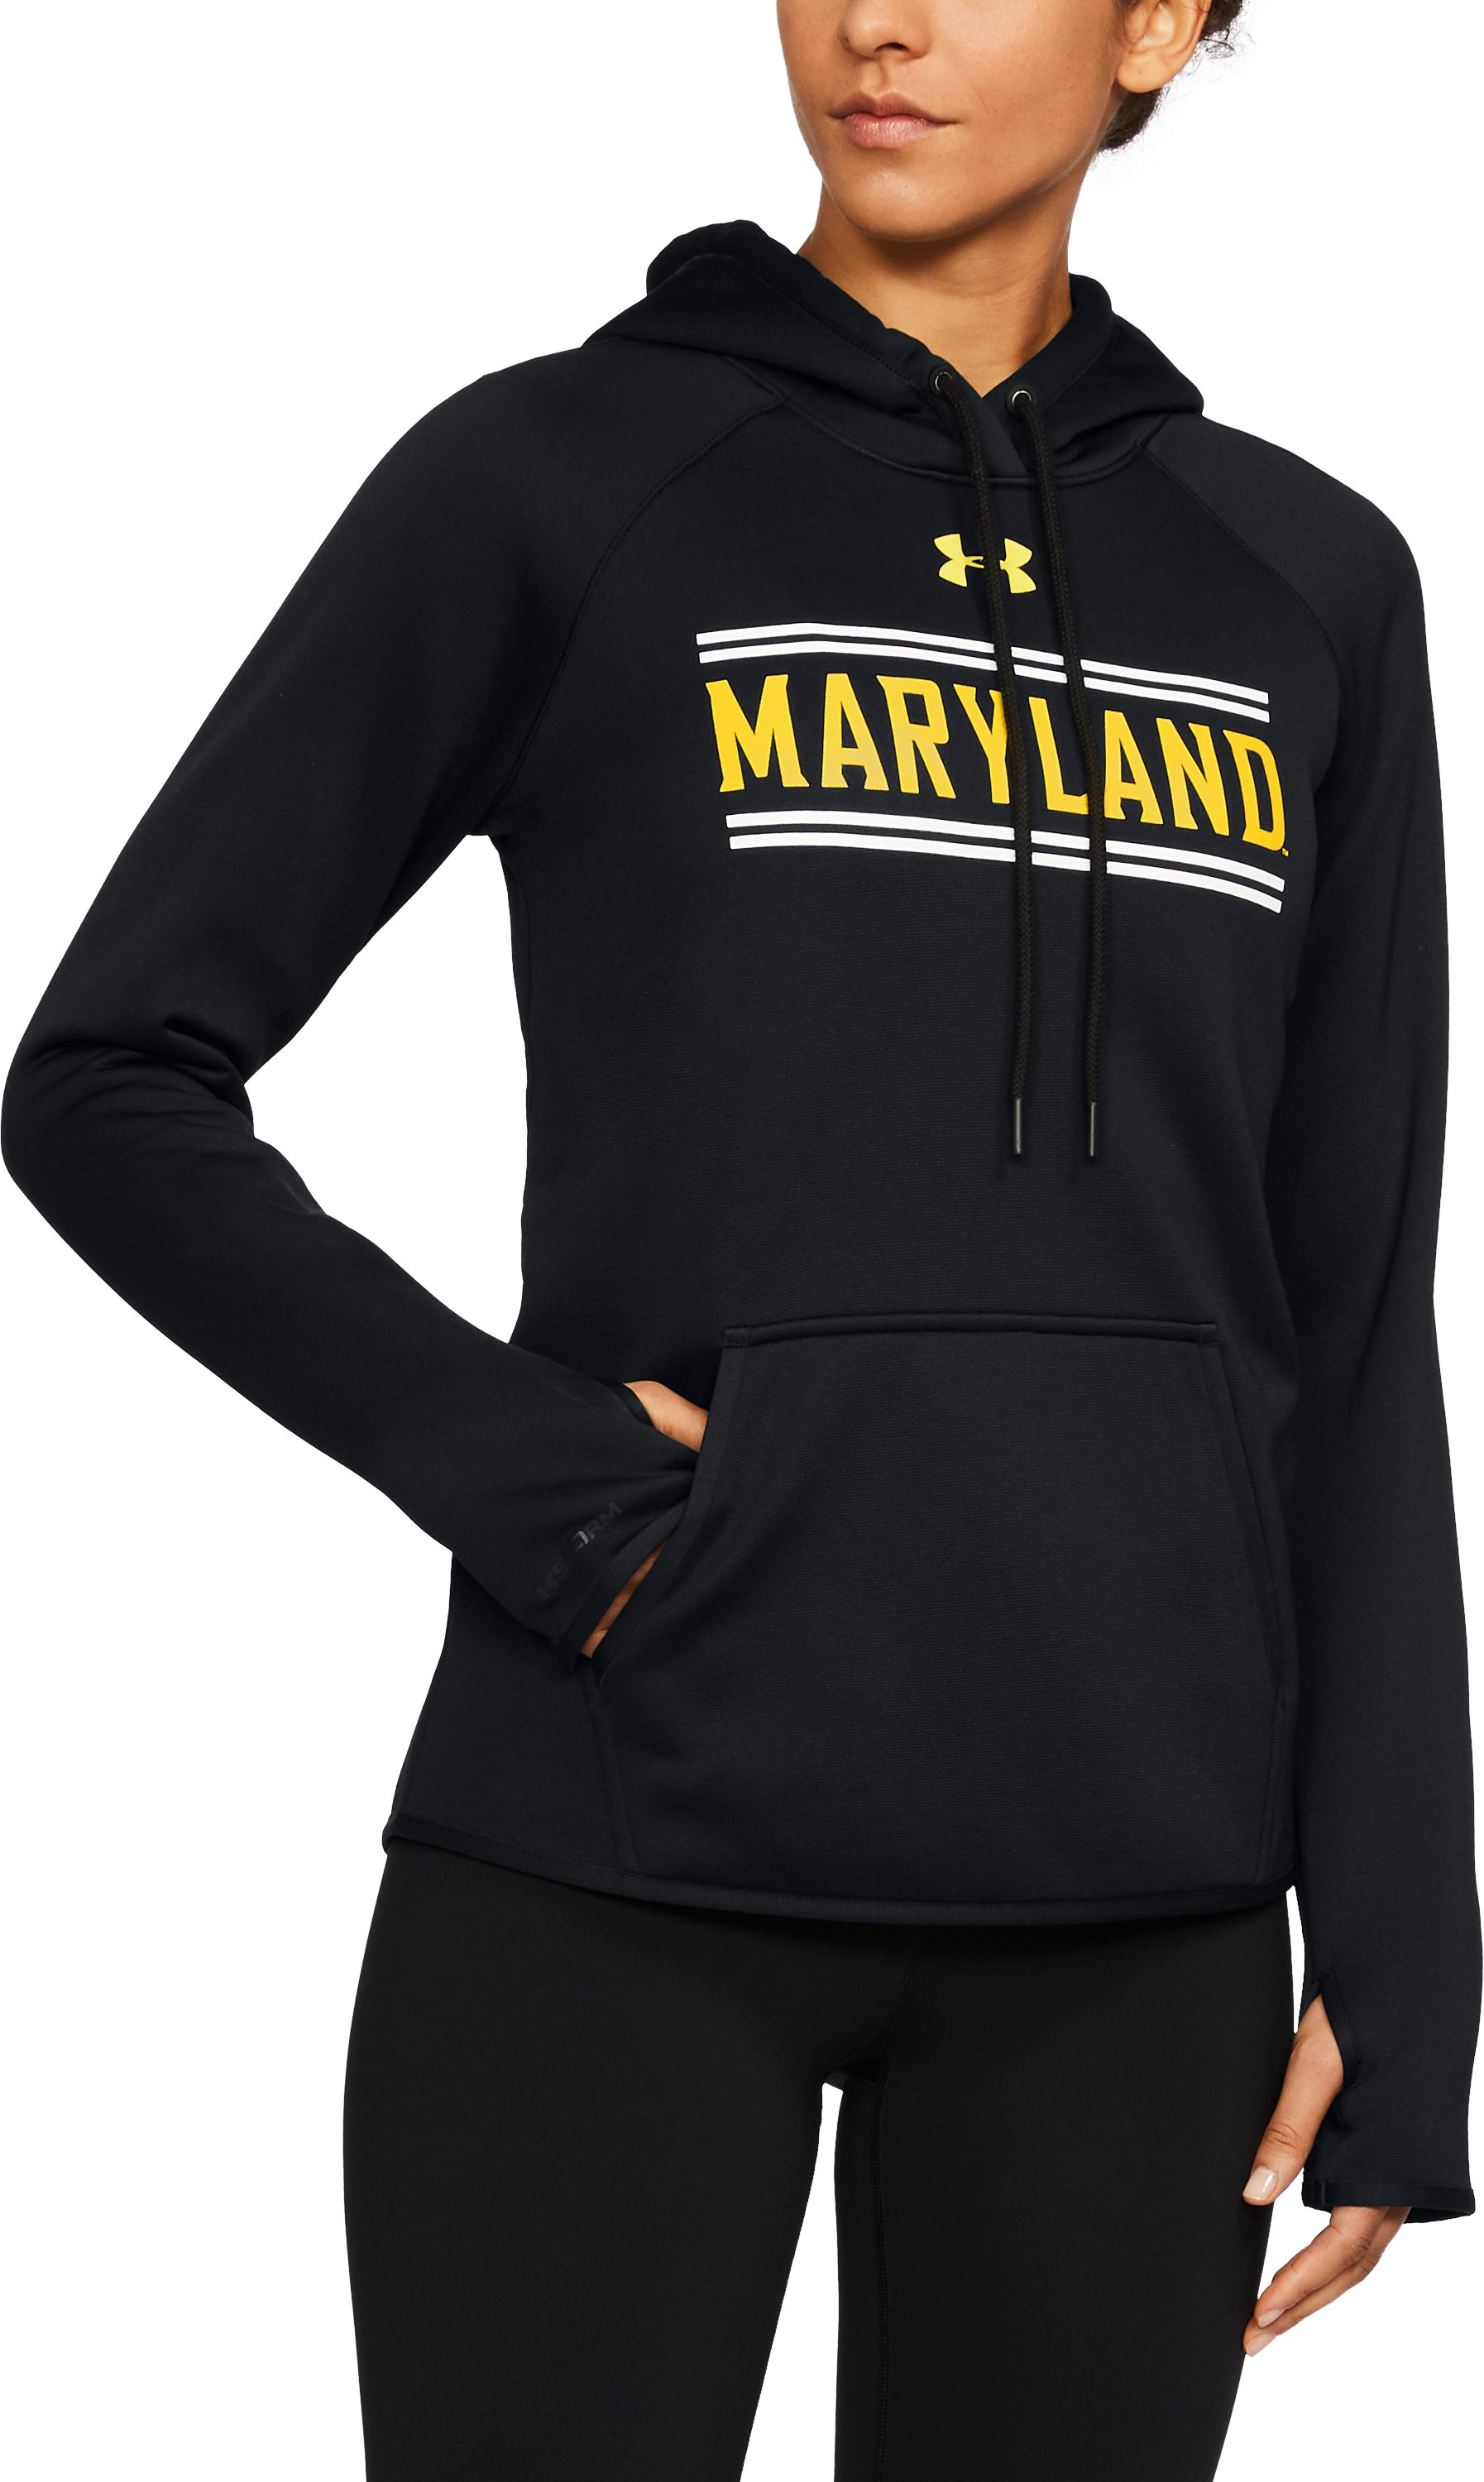 Women's Maryland Armour® Fleece Hoodie, Black